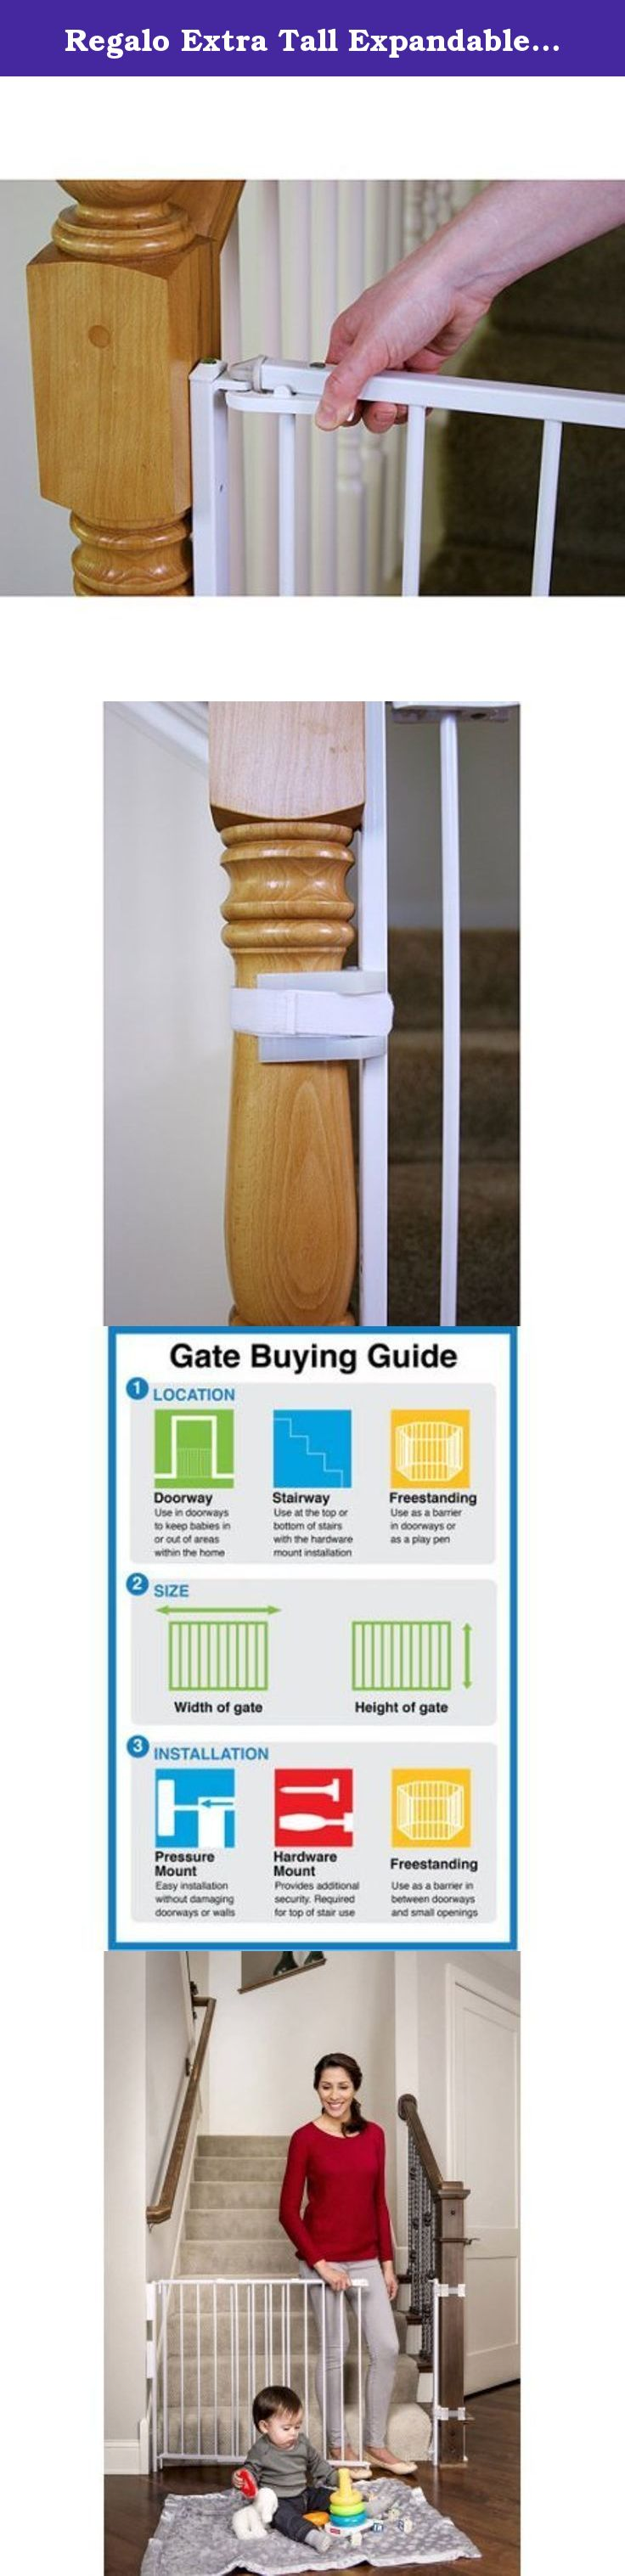 Regalo Extra Tall Expandable Top Of Stairs Baby Gate, Includes Mounting  Kit. The Regalo